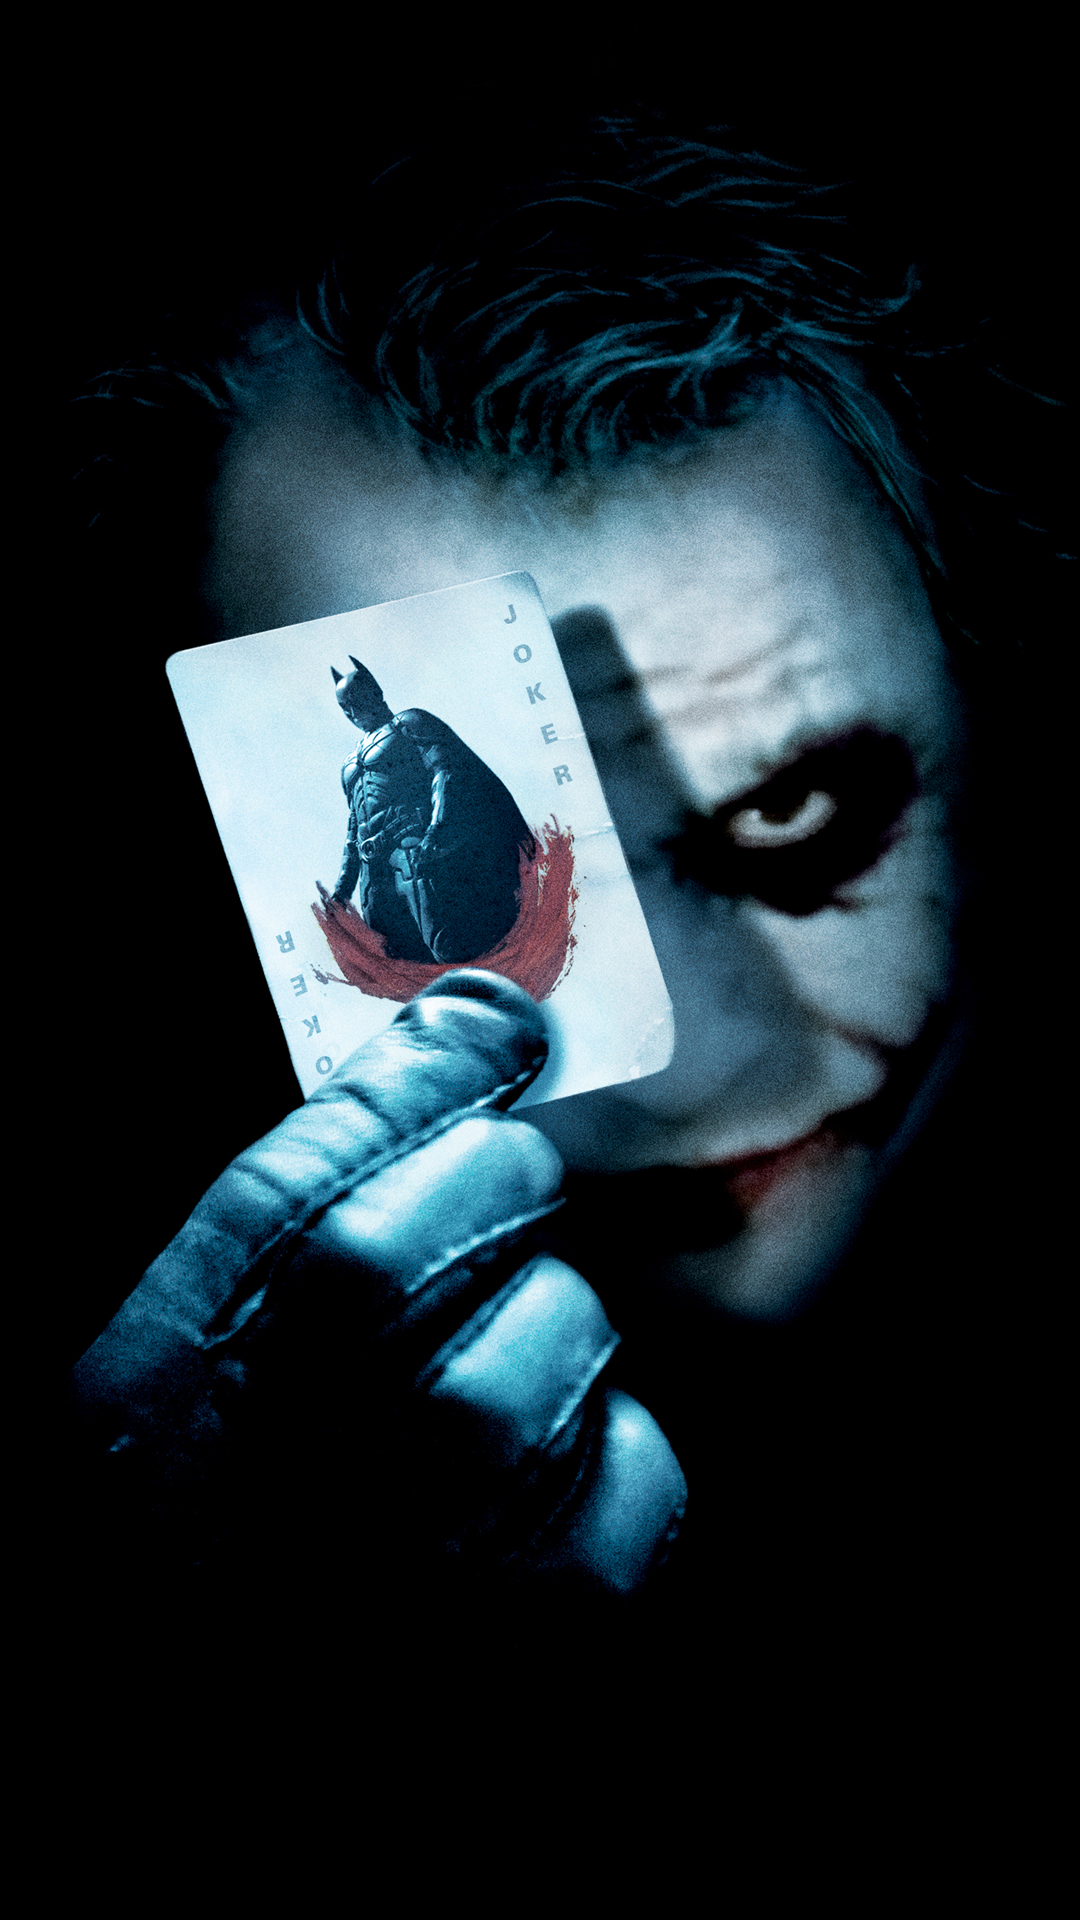 Joker HD Wallpaper For Mobile